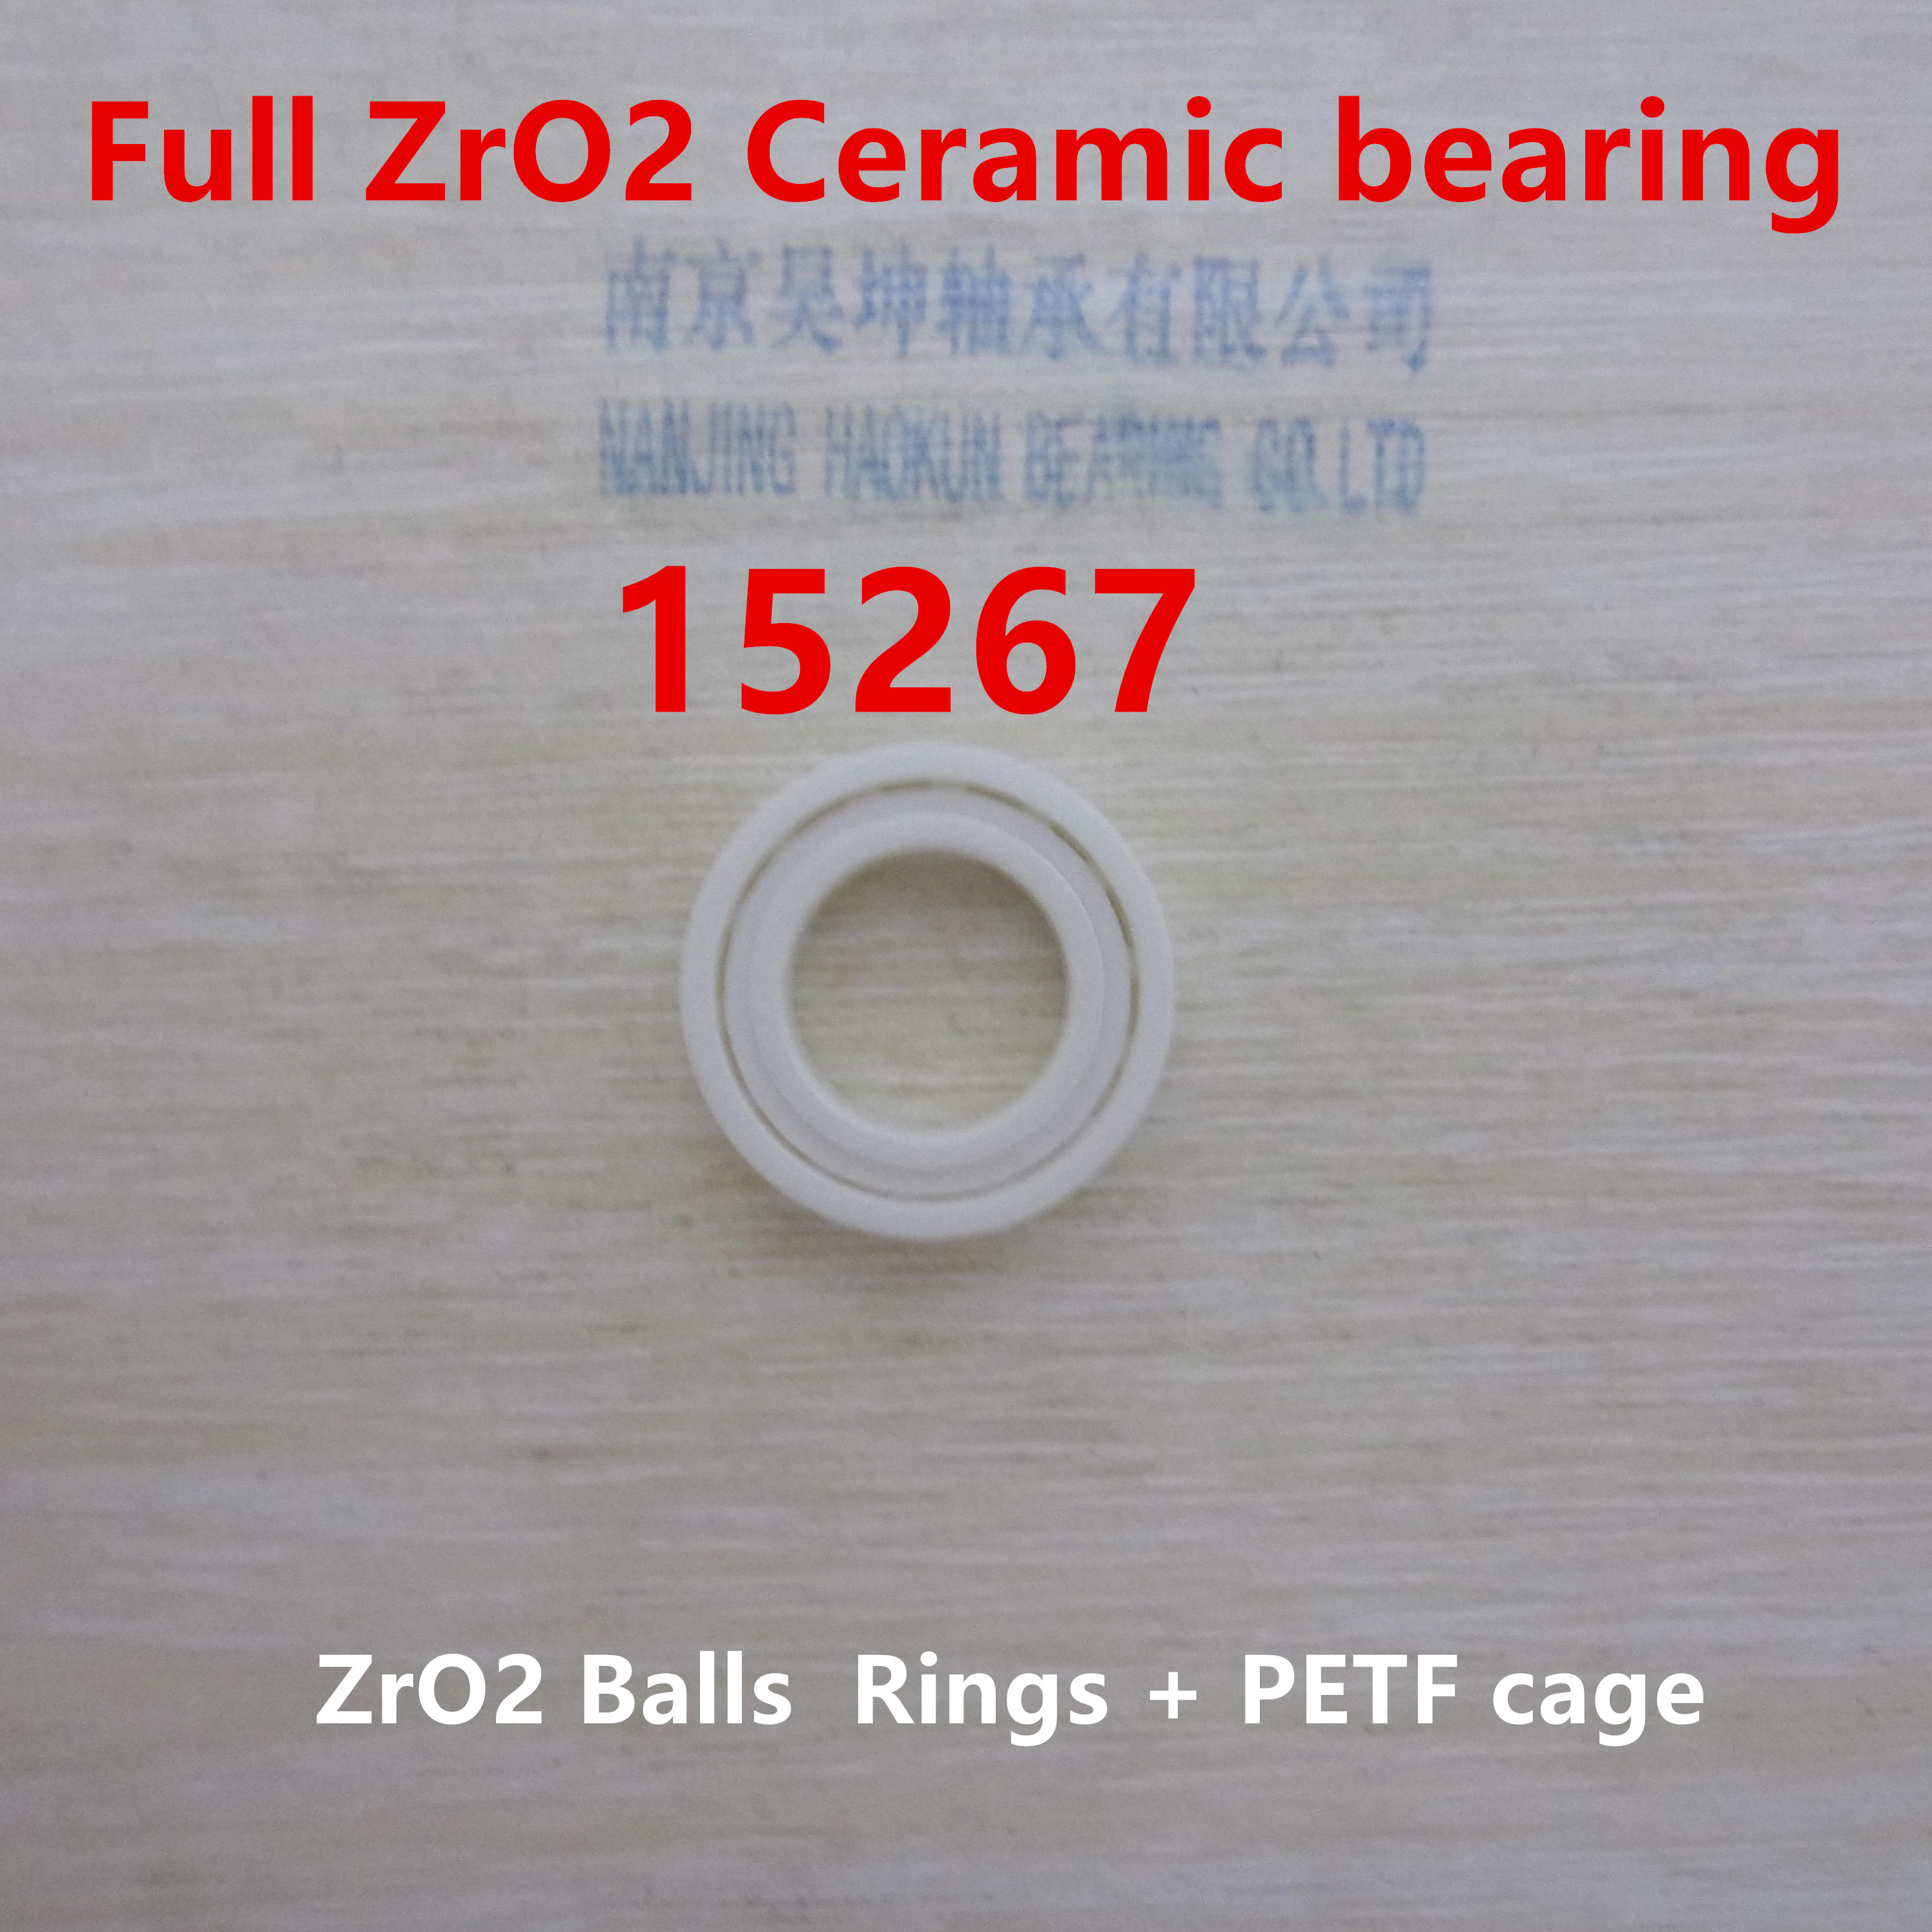 Ceramic wheel hub bearing zro2 15267 15*26*7mm 15267 full zro2 ceramic bearing rear wheel hub for mazda 3 bk 2003 2008 bbm2 26 15xa bbm2 26 15xb bp4k 26 15xa bp4k 26 15xb bp4k 26 15xc bp4k 26 15xd